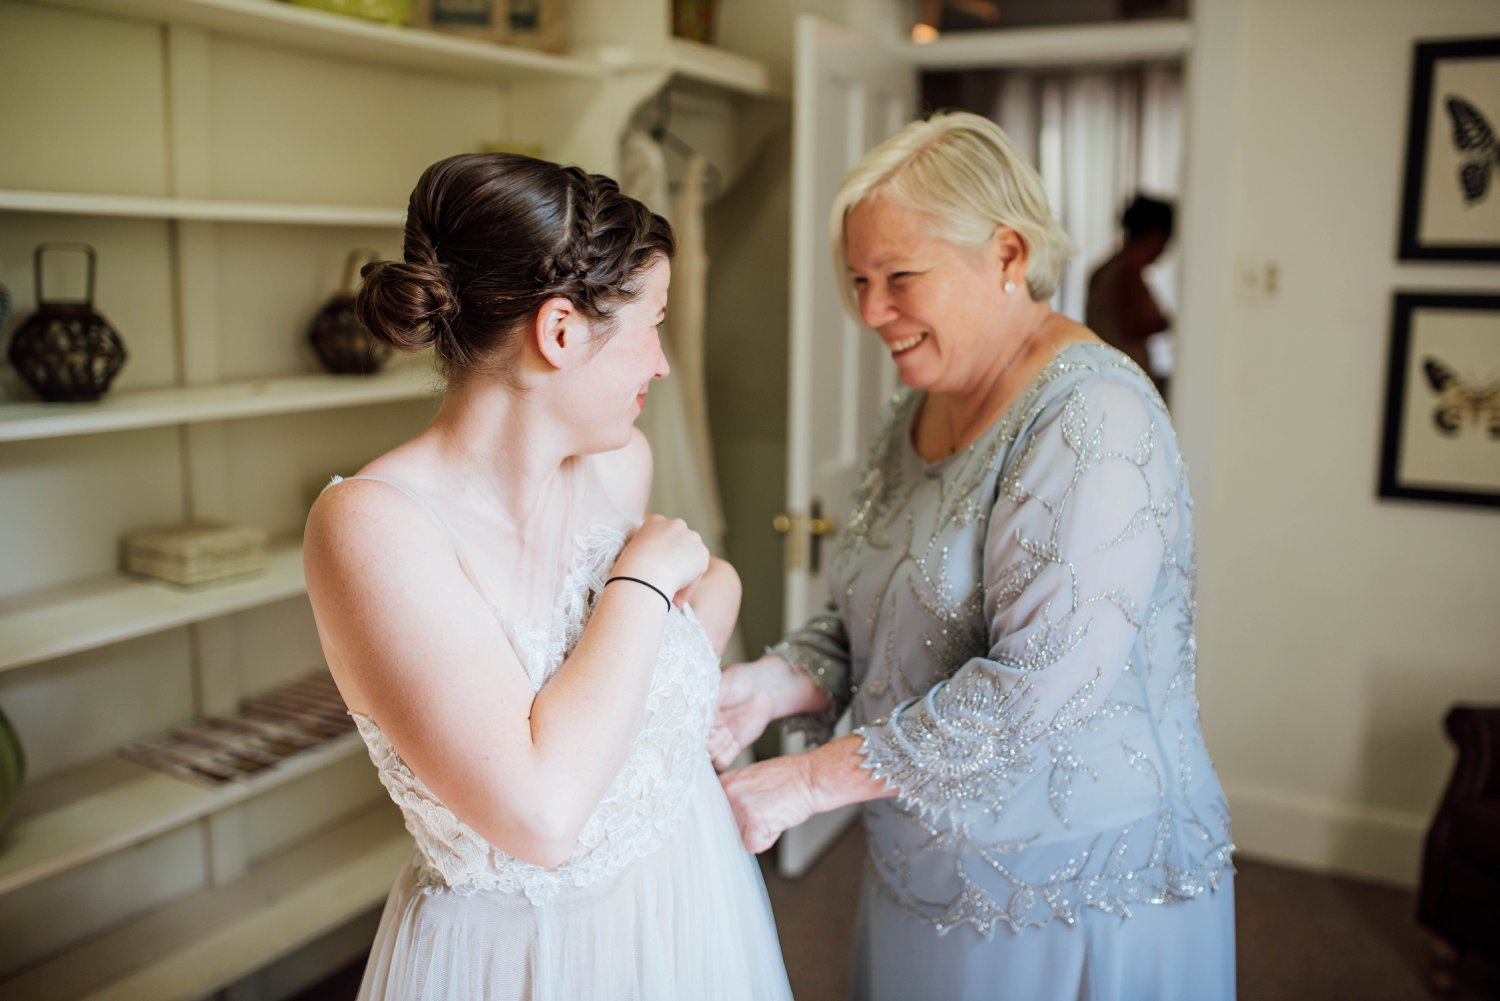 Such a sweet moment of a bride and her mom getting ready for the big day!Photo by Maddie Mae Photography